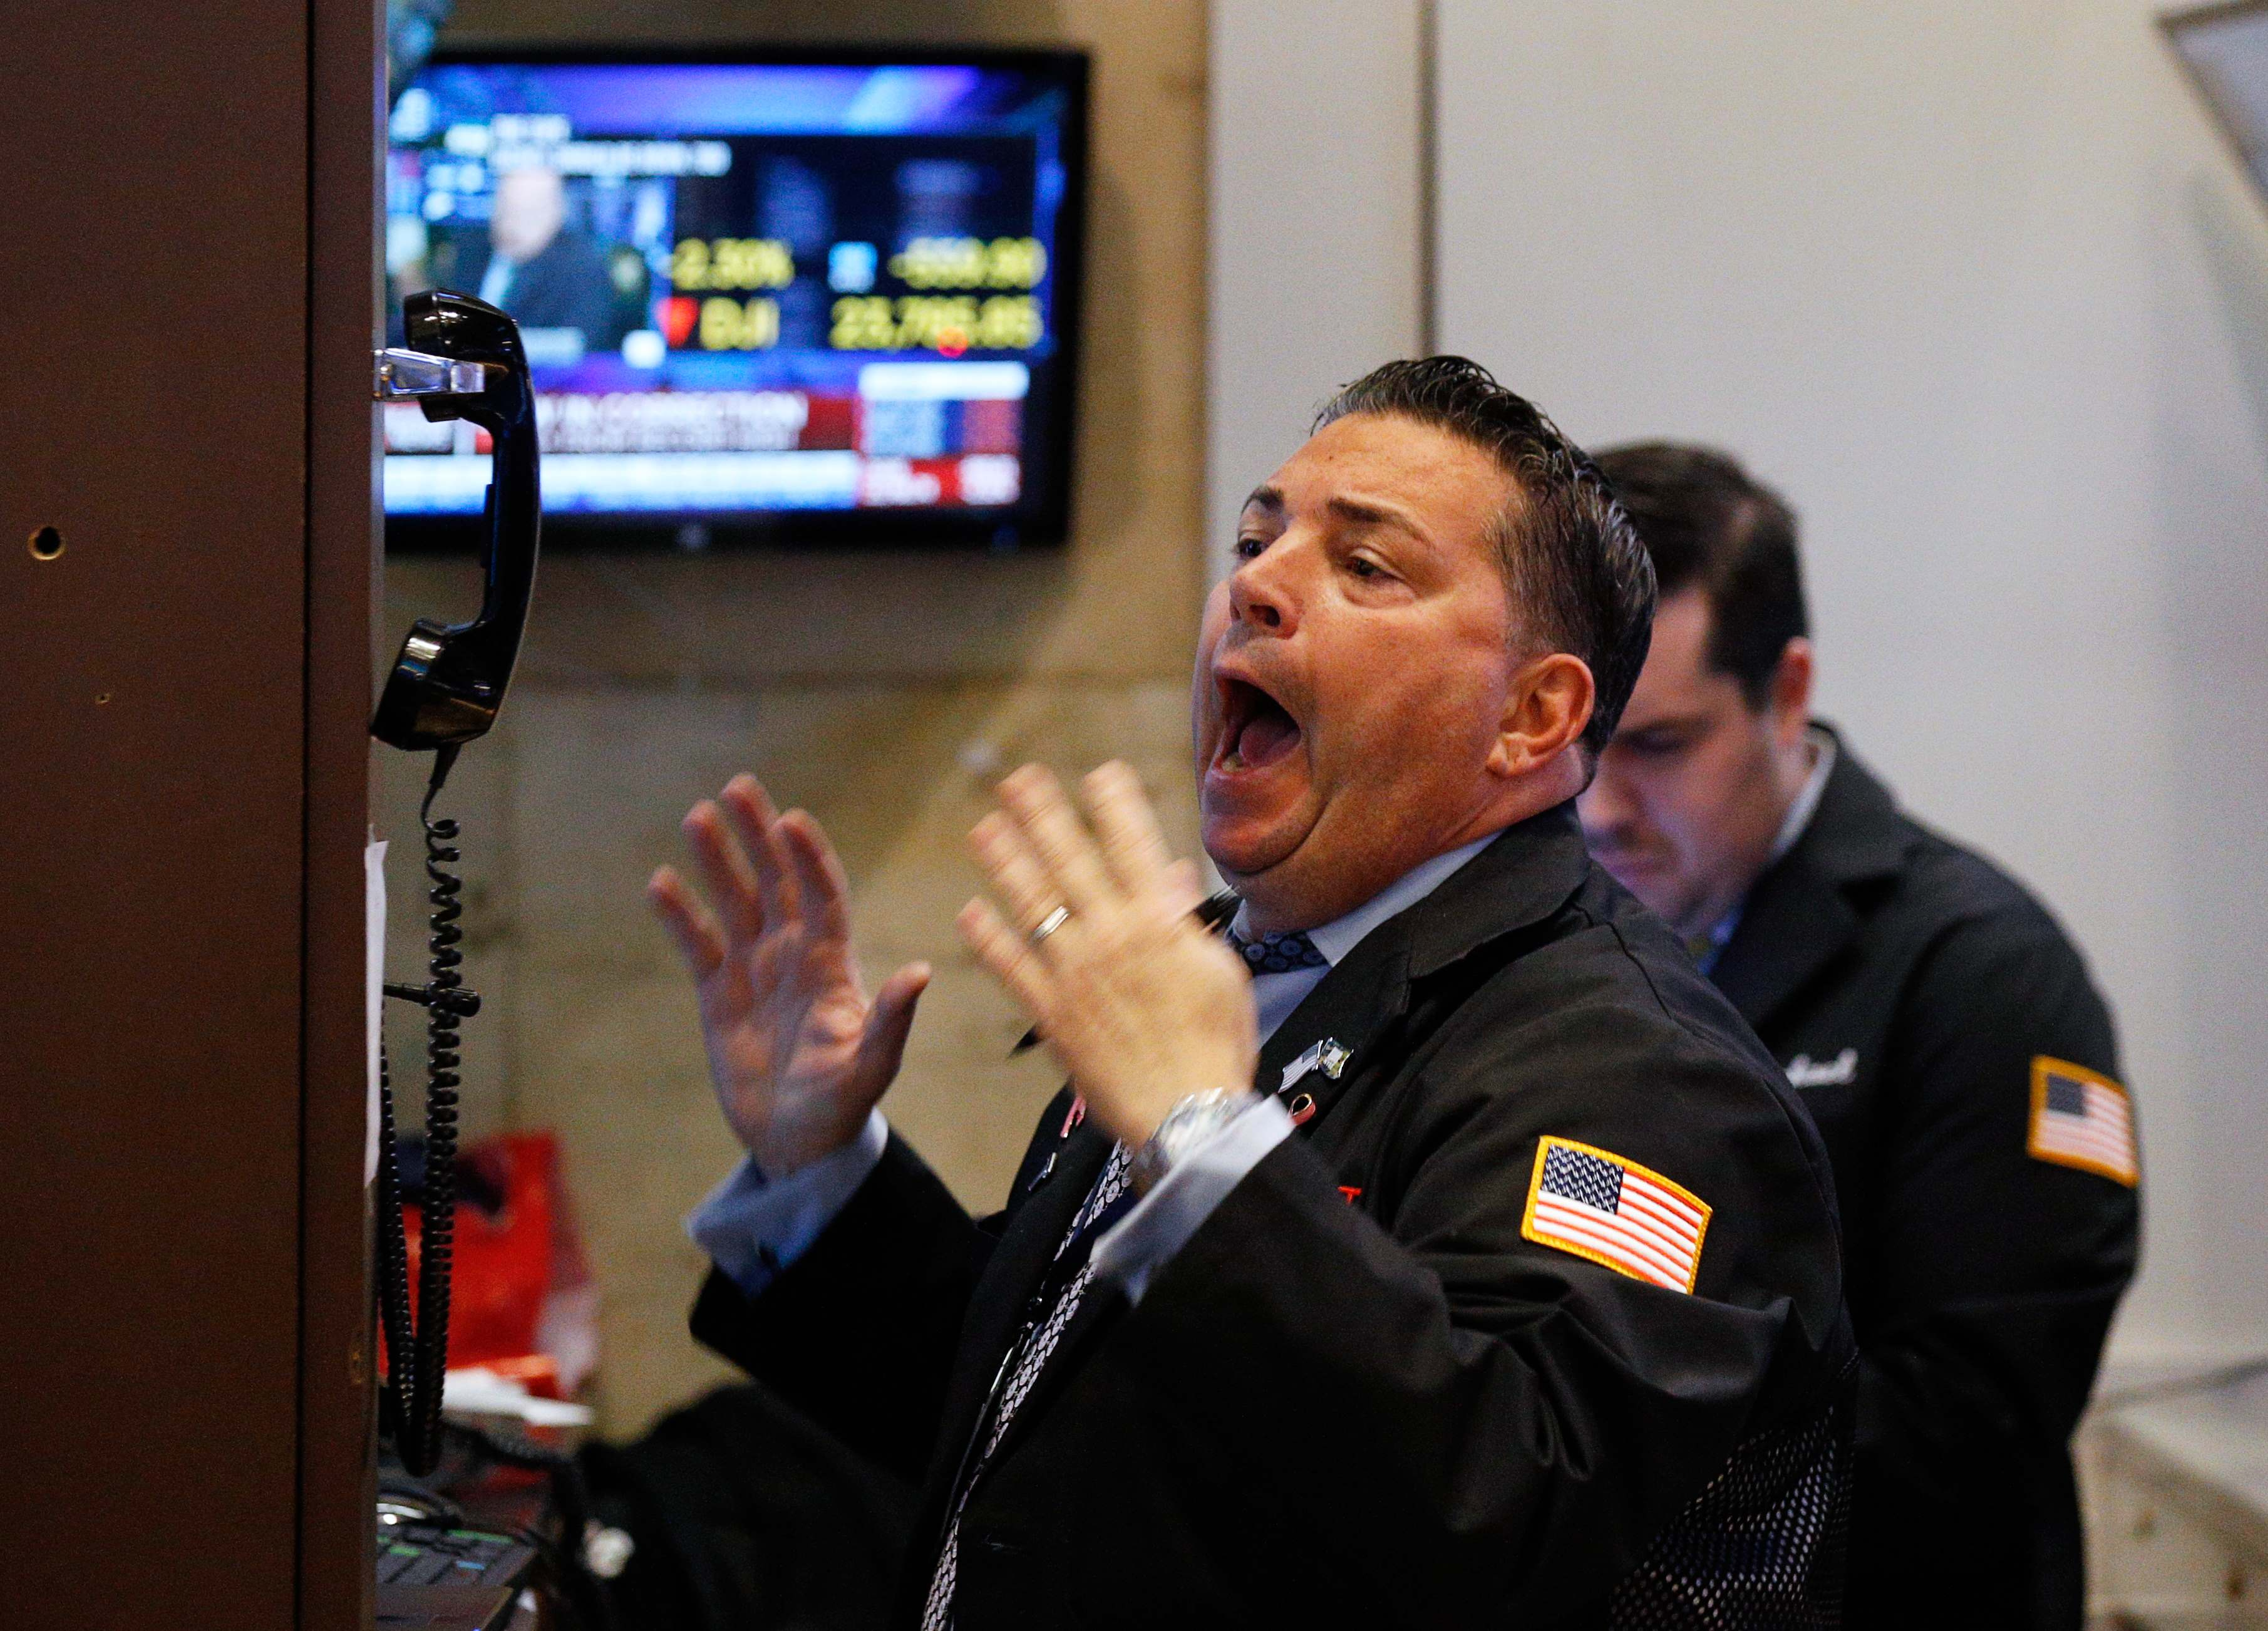 A trader reacts on the floor of the New York Stock Exchange in New York, U.S., February 6, 2018.